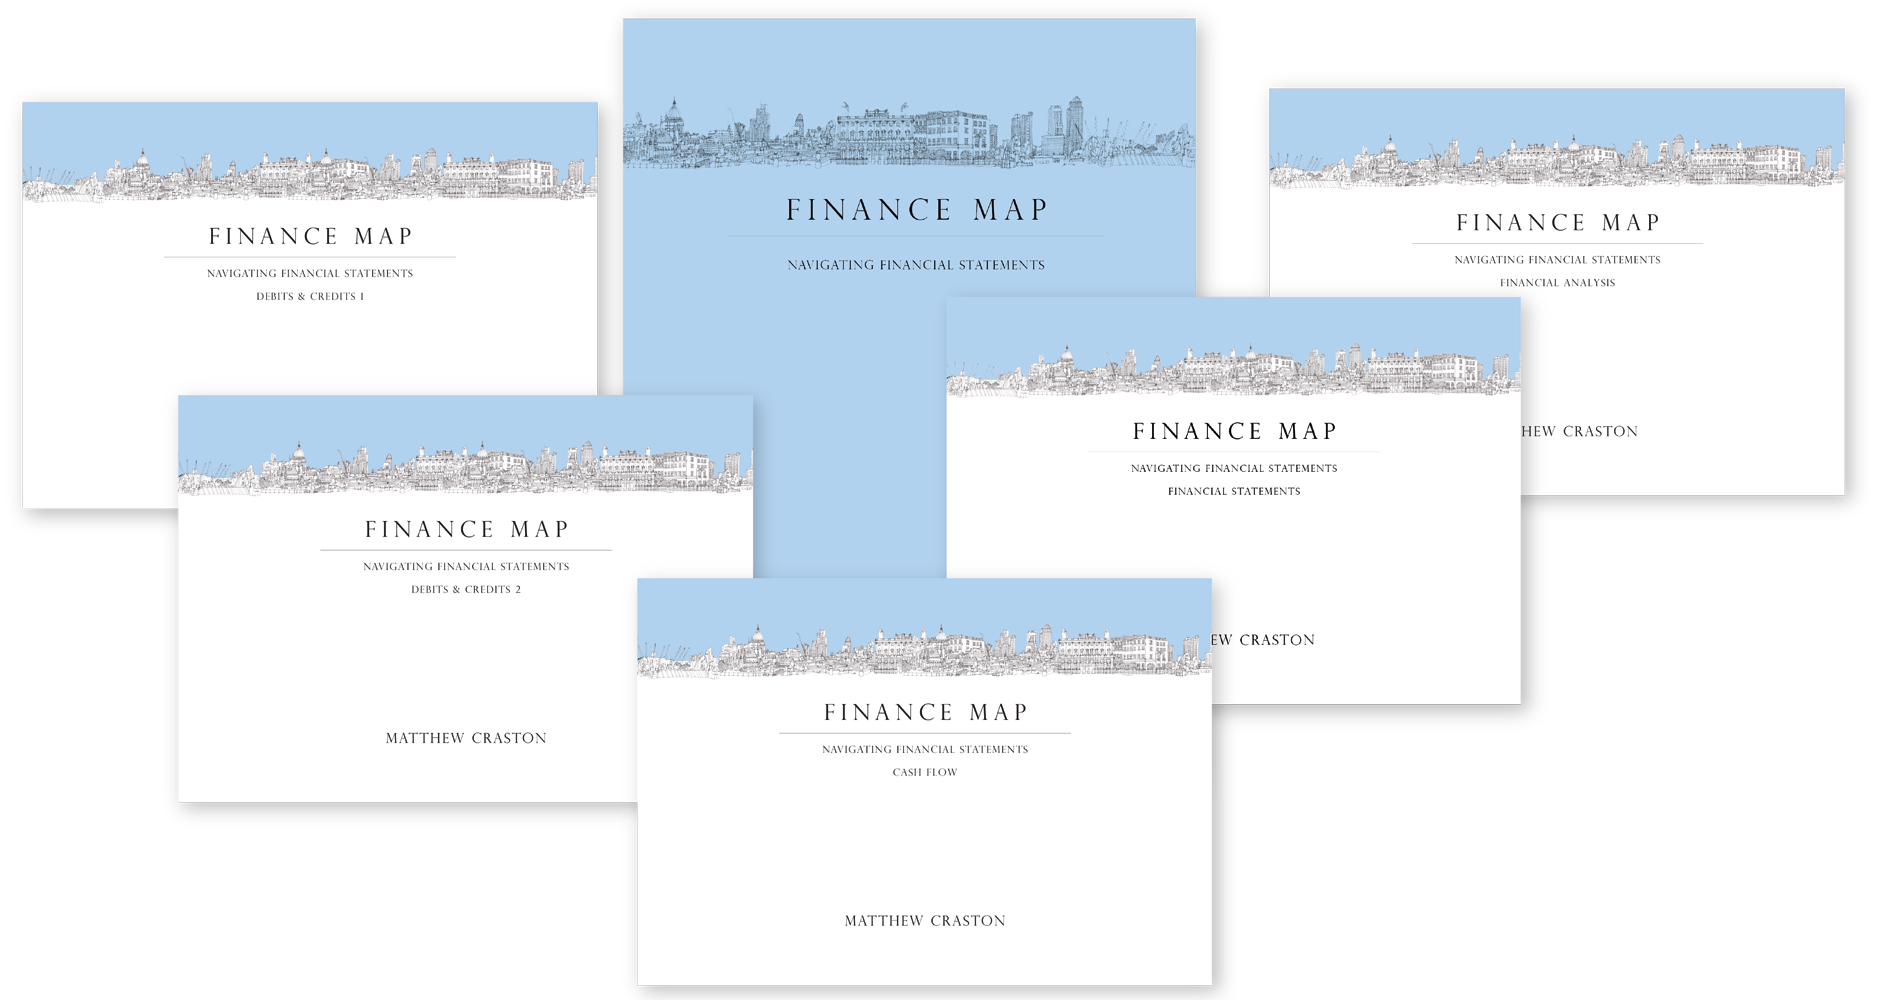 FINANCE MAP NAVIGATING FINANCIAL STATEMENTS